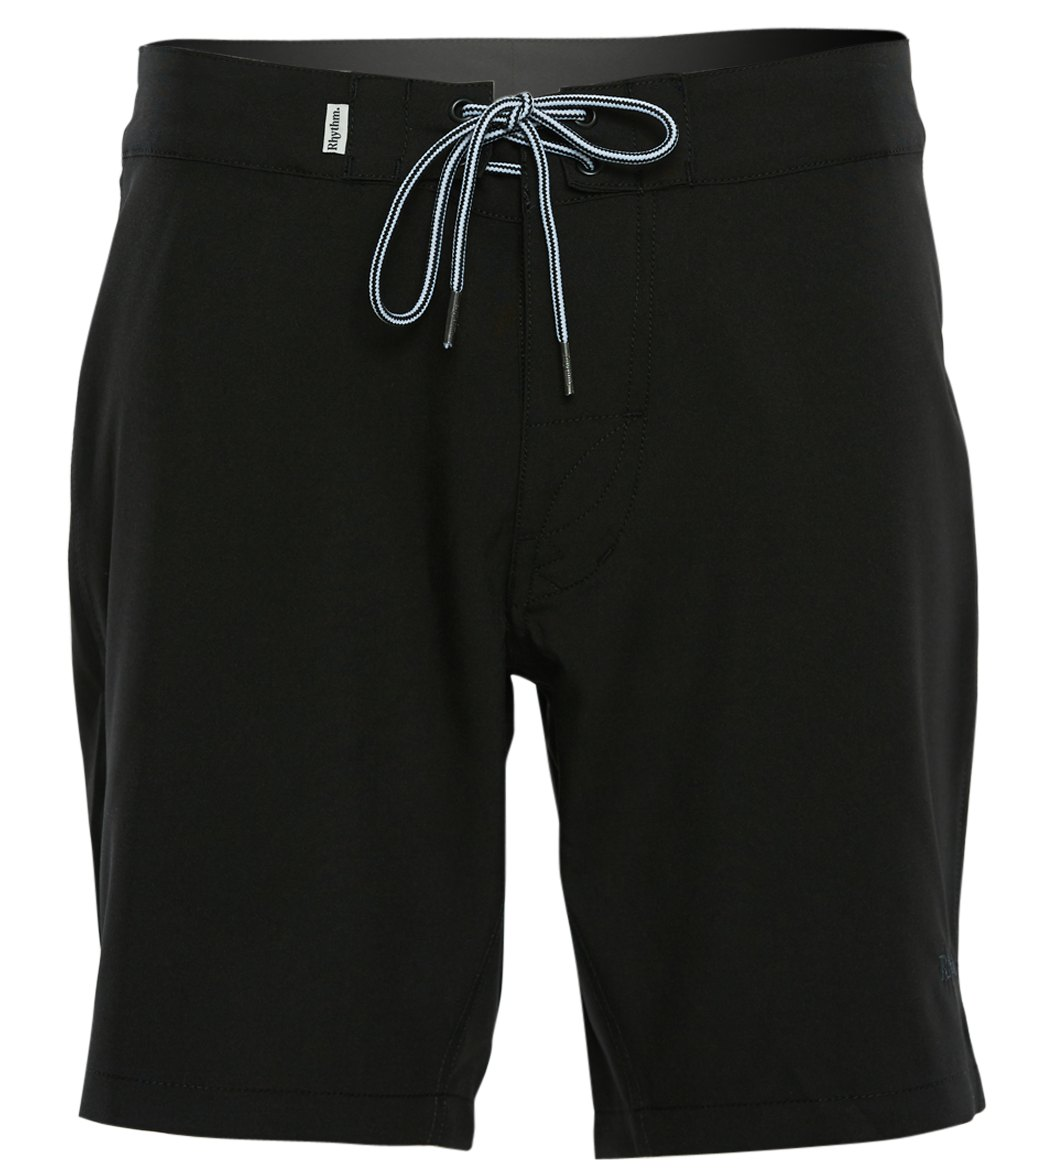 50a27f2237 Rhythm Black Label Swim Trunk at SwimOutlet.com - Free Shipping